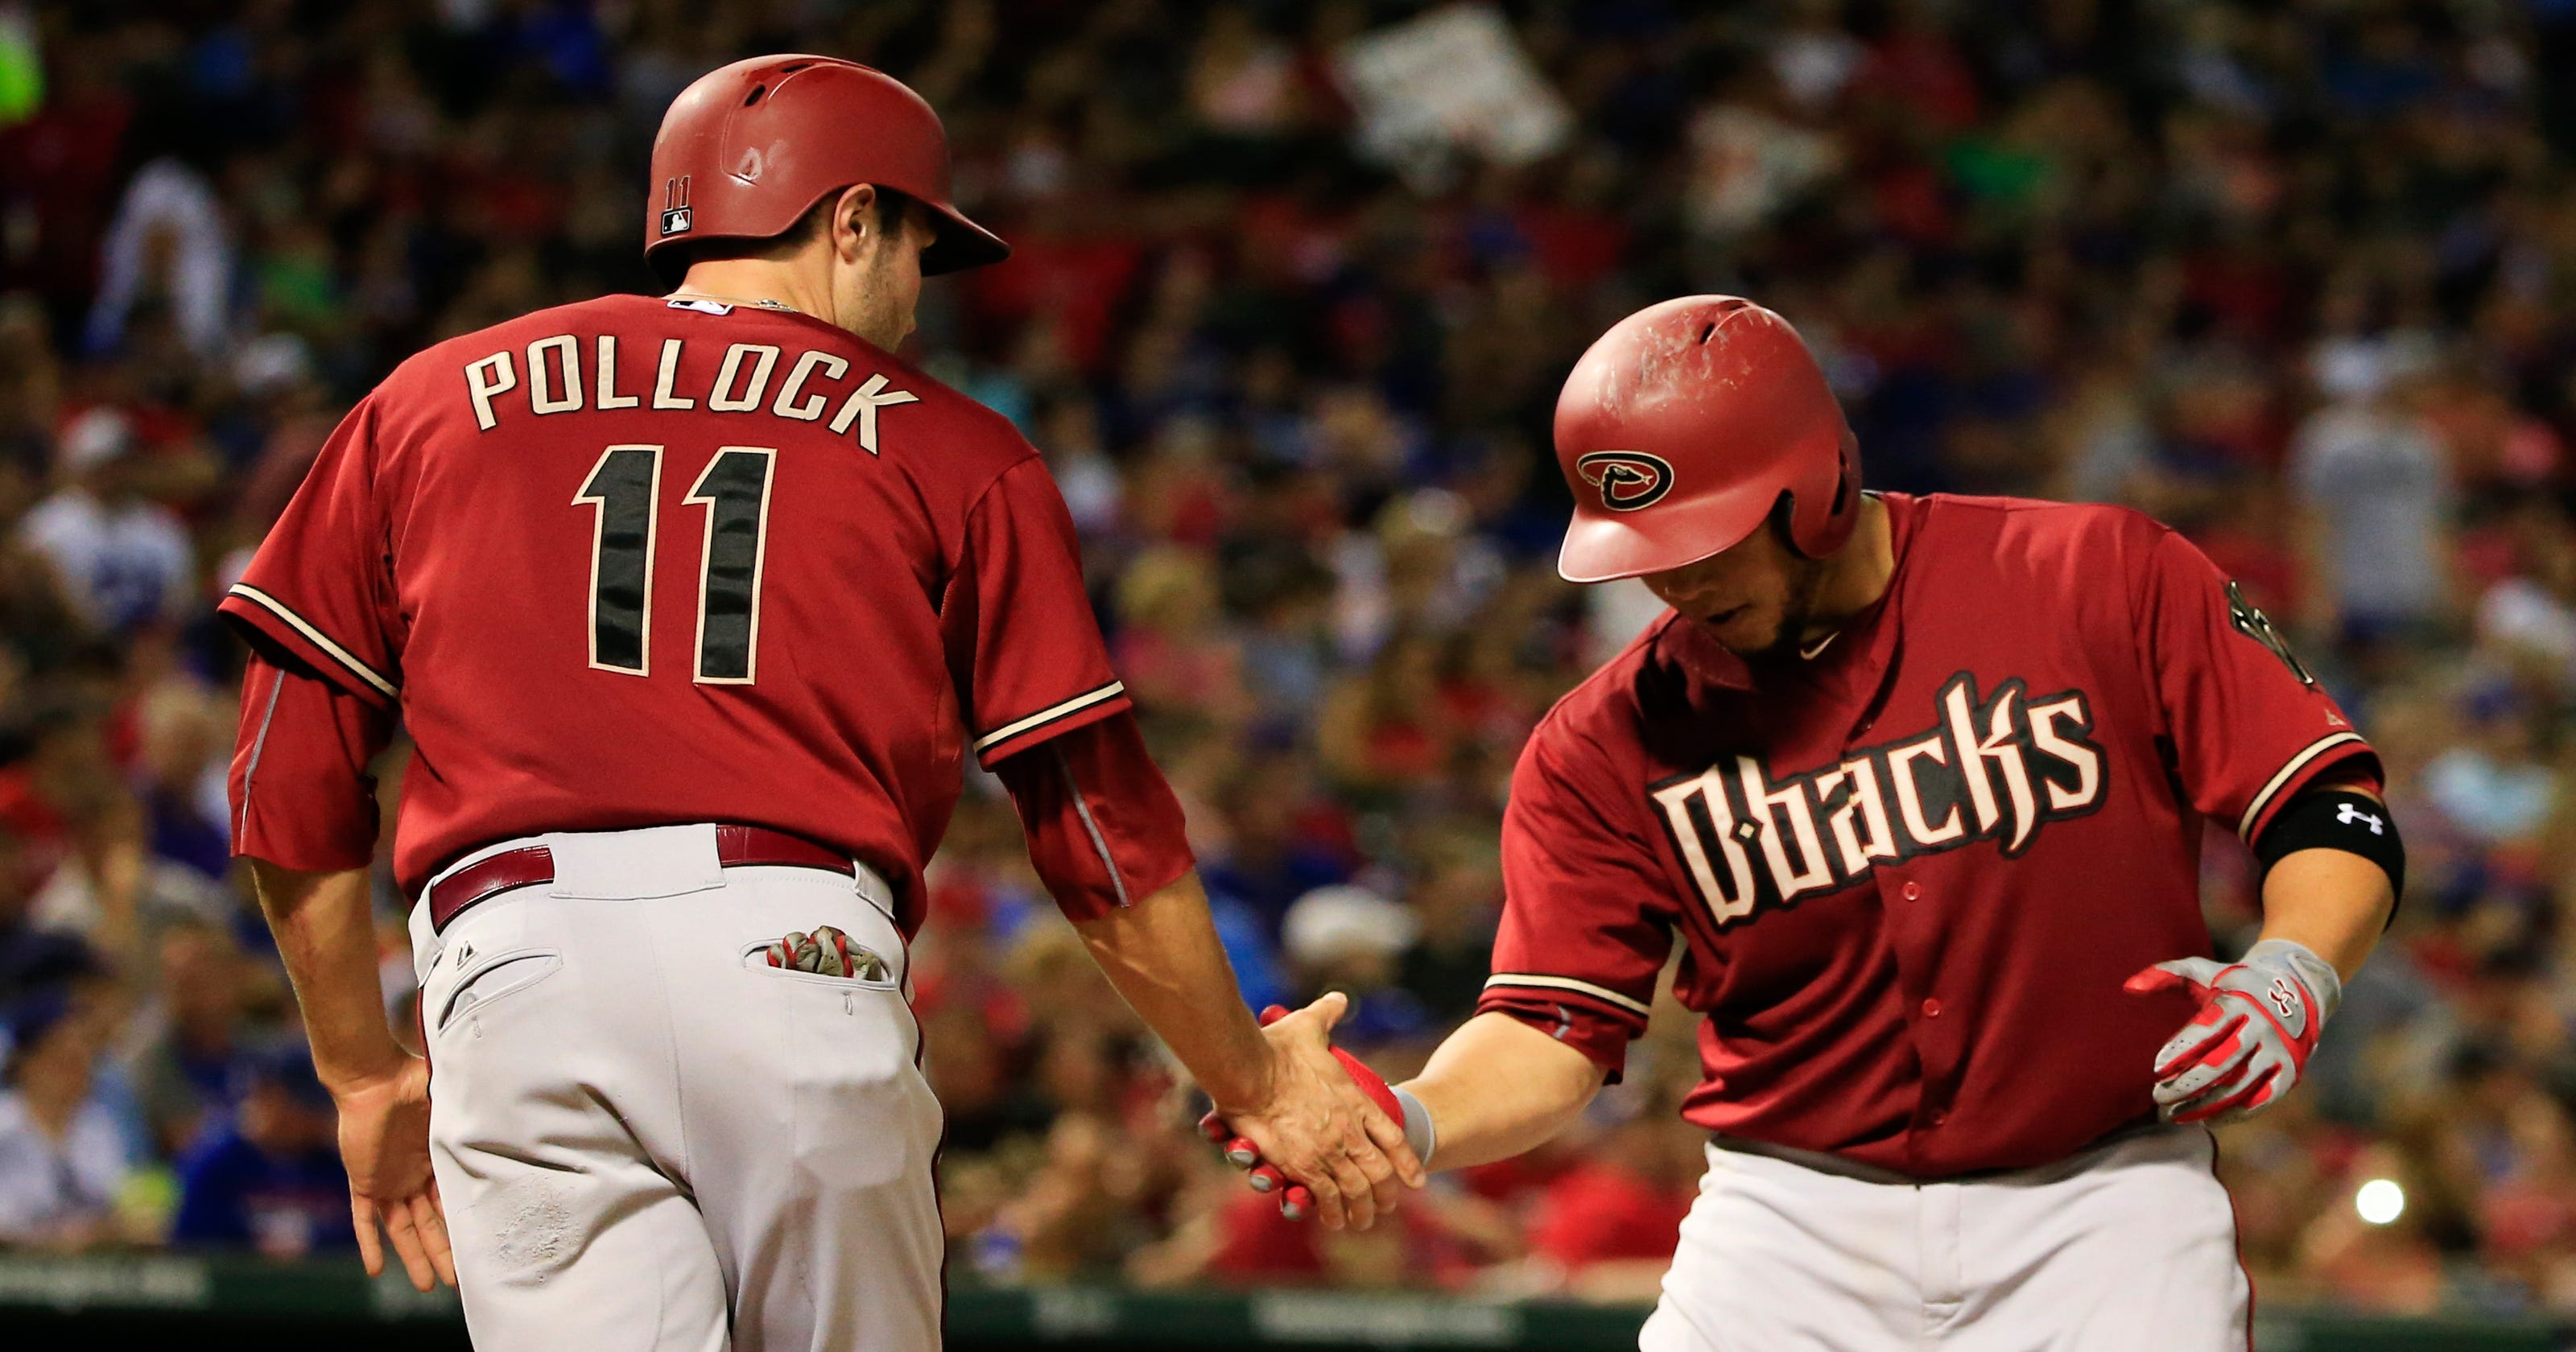 arizona diamondbacks exceeding expectations in 2015